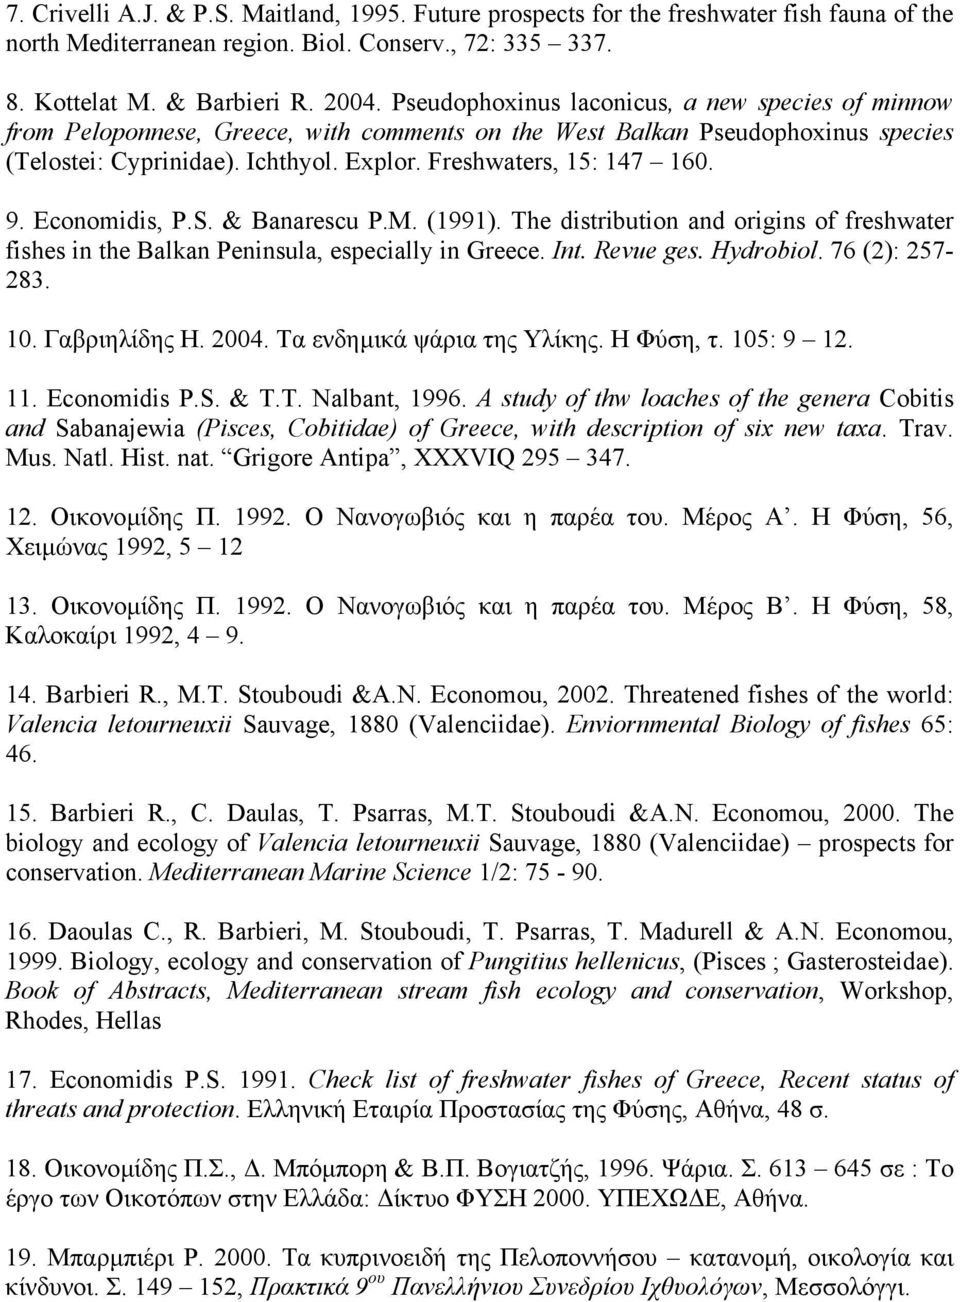 9. Economidis, P.S. & Banarescu P.M. (1991). The distribution and origins of freshwater fishes in the Balkan Peninsula, especially in Greece. Int. Revue ges. Hydrobiol. 76 (2): 257-283. 10.